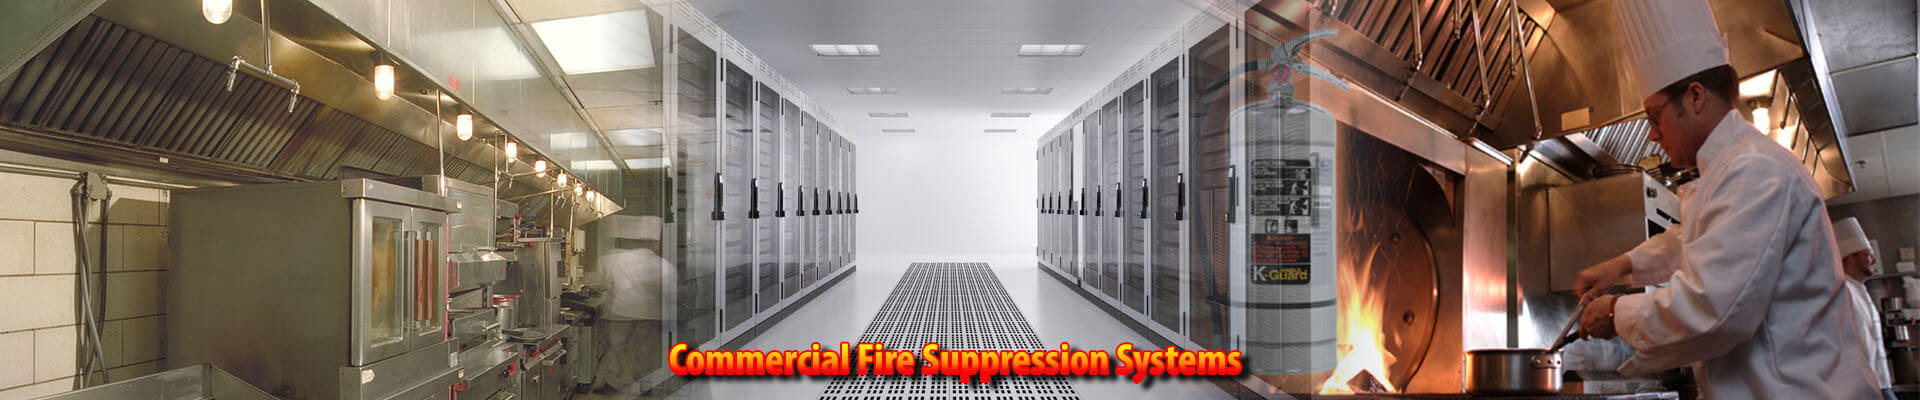 commercial fires suppression systems